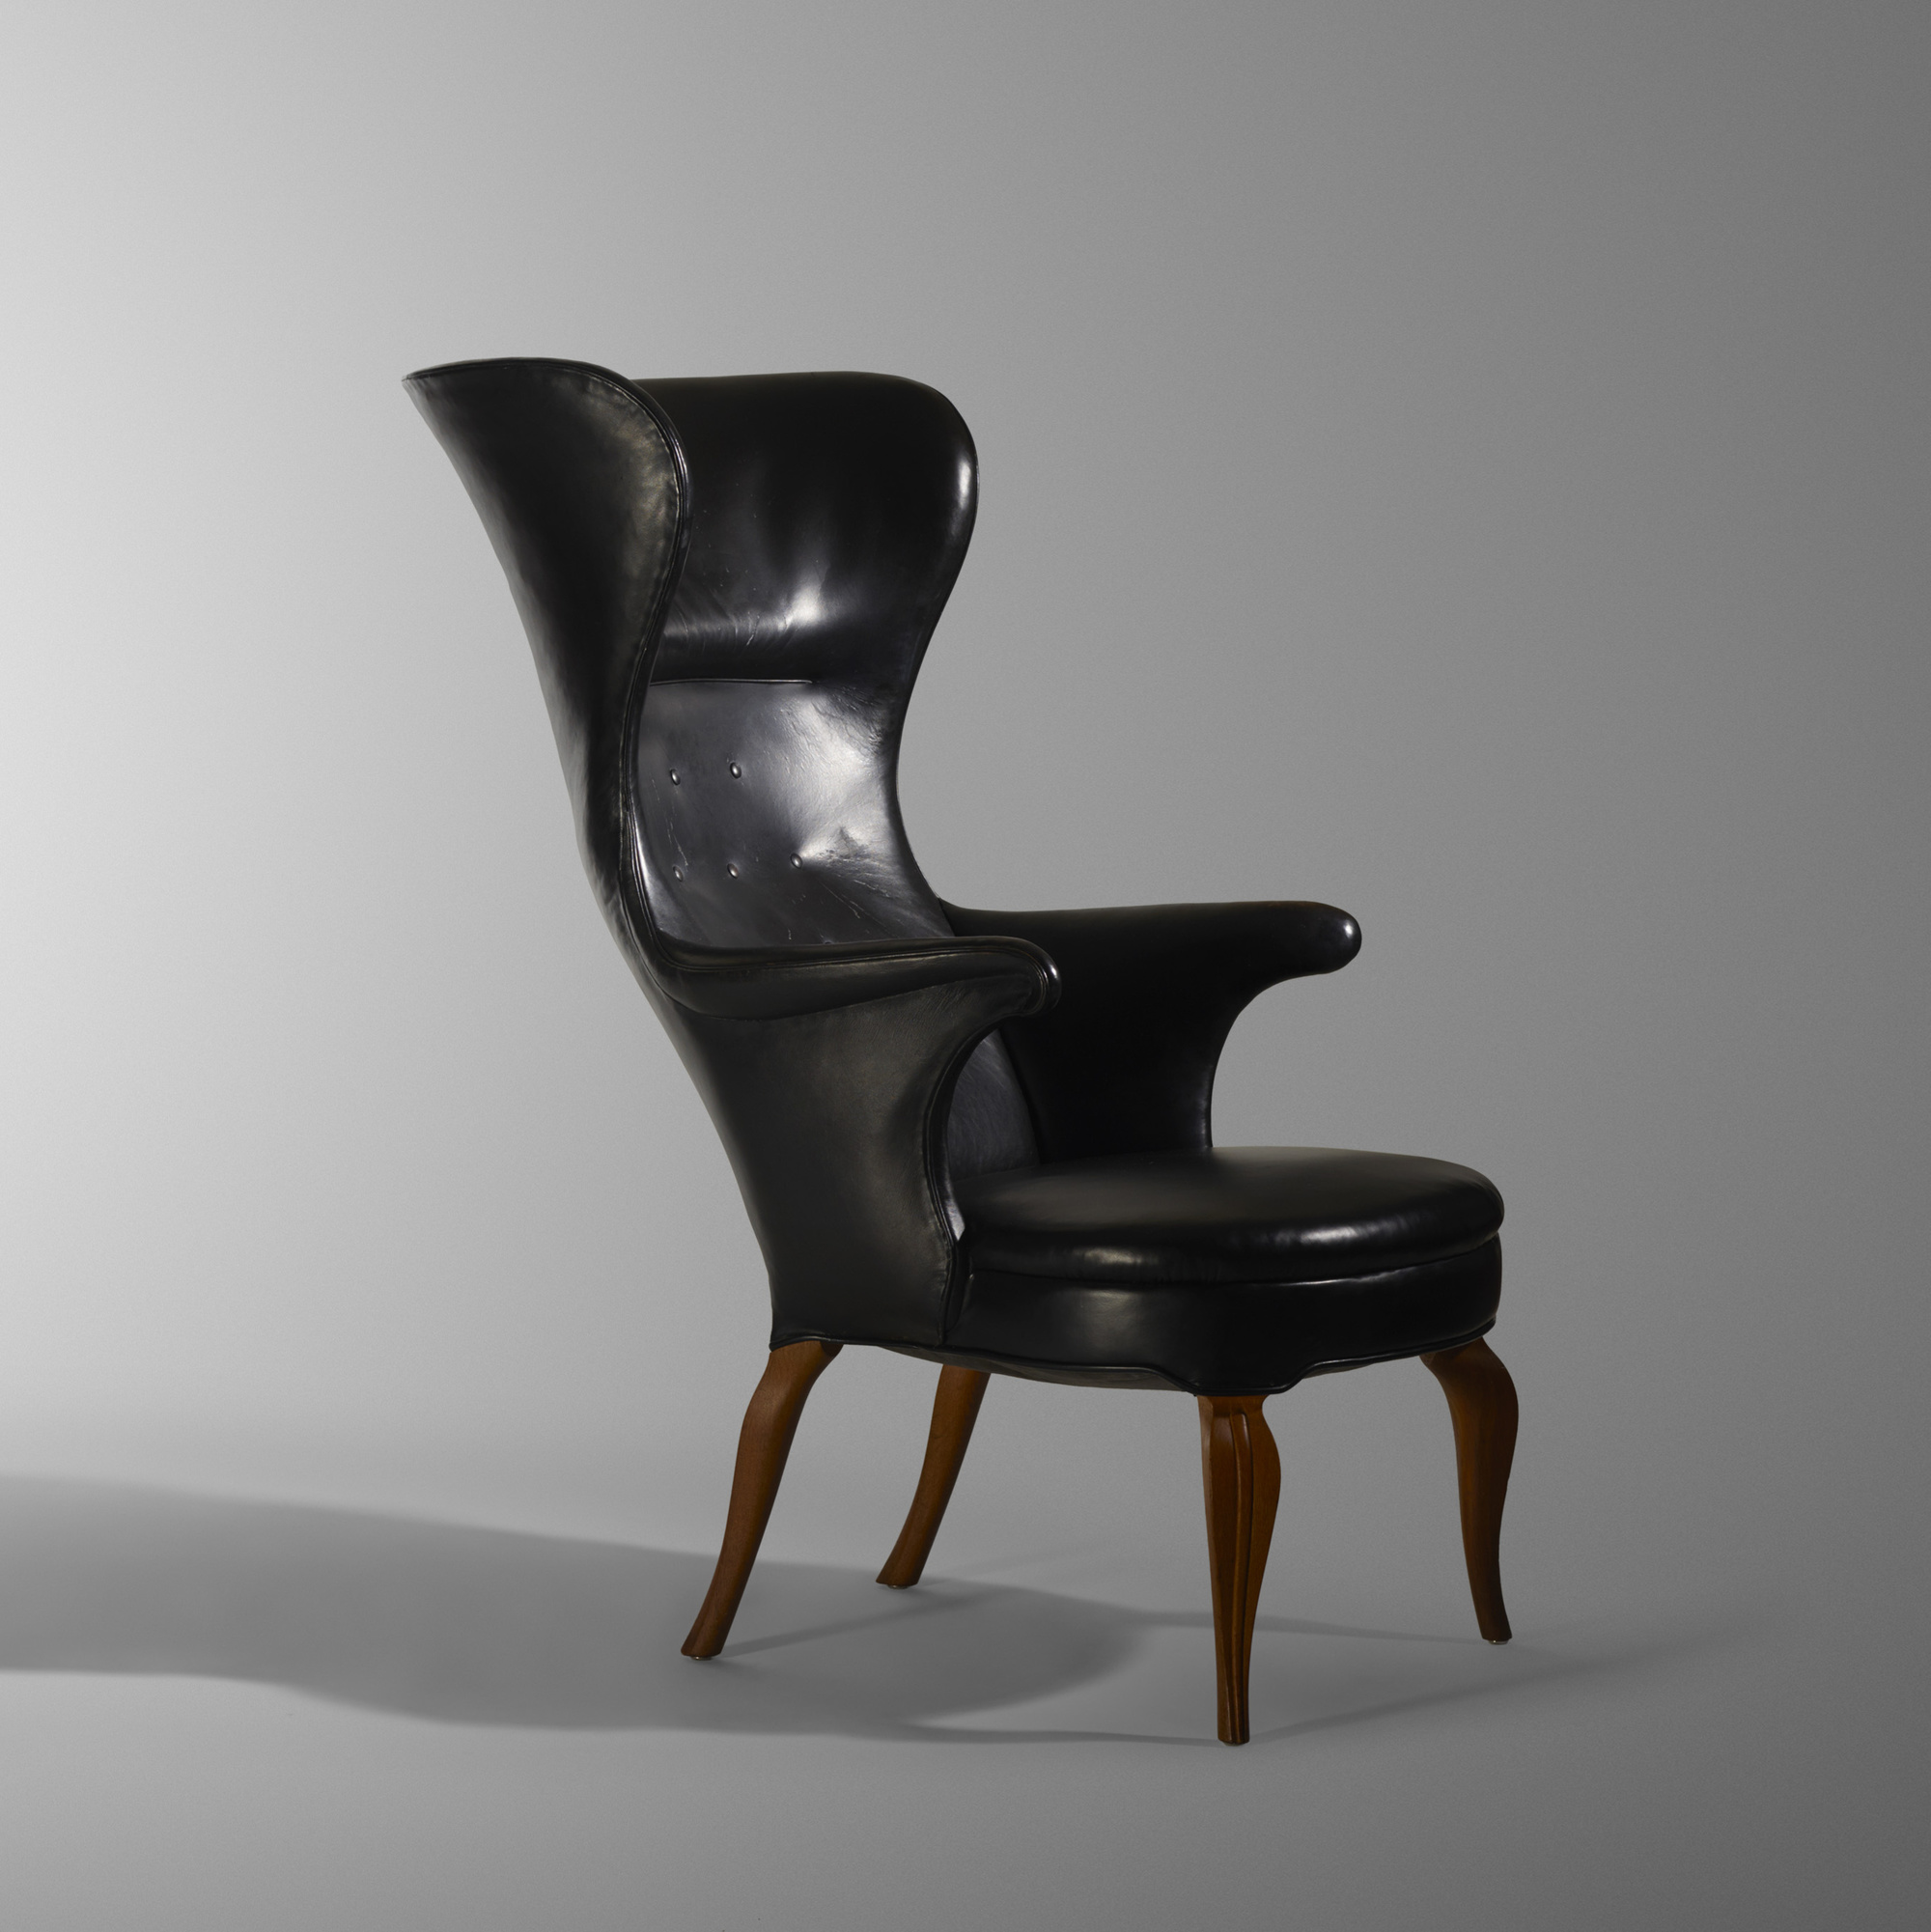 154: Frits Henningsen / Wingback armchair (1 of 3)